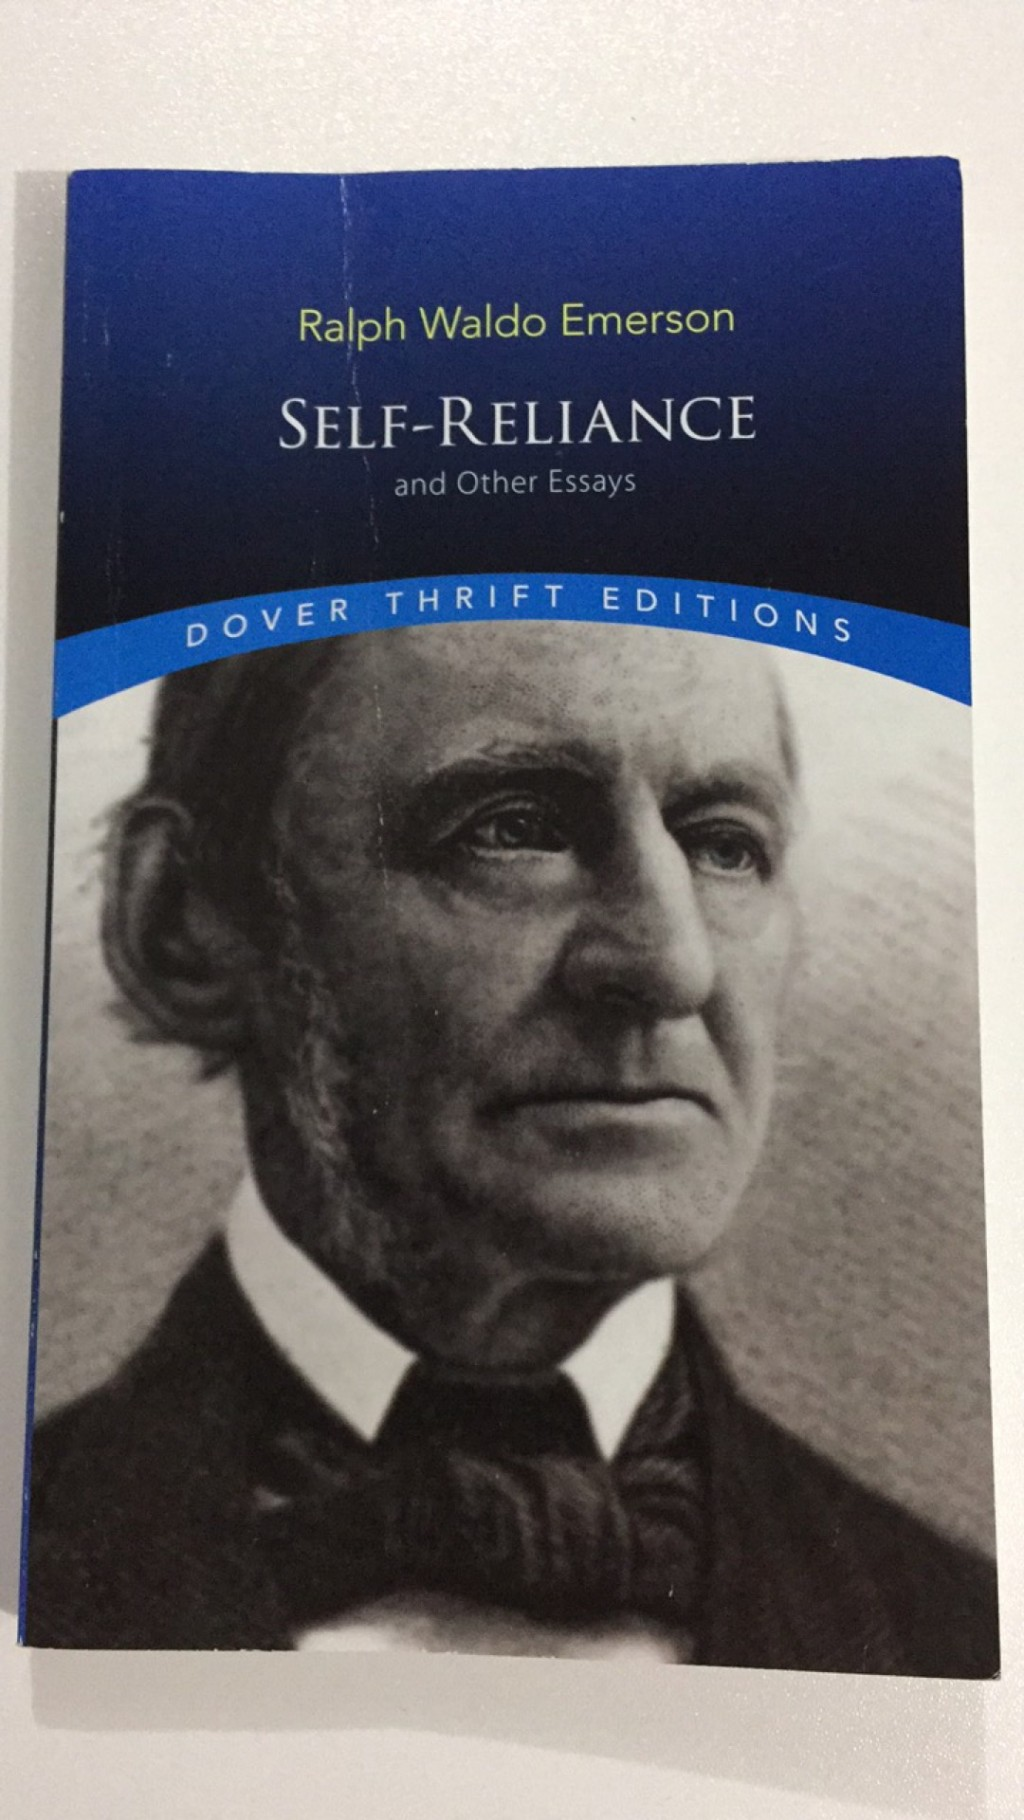 007 Emerson Self Reliance Essay Example By Ralph Waldo Staggering Summary Translated Into Modern English Analysis Large